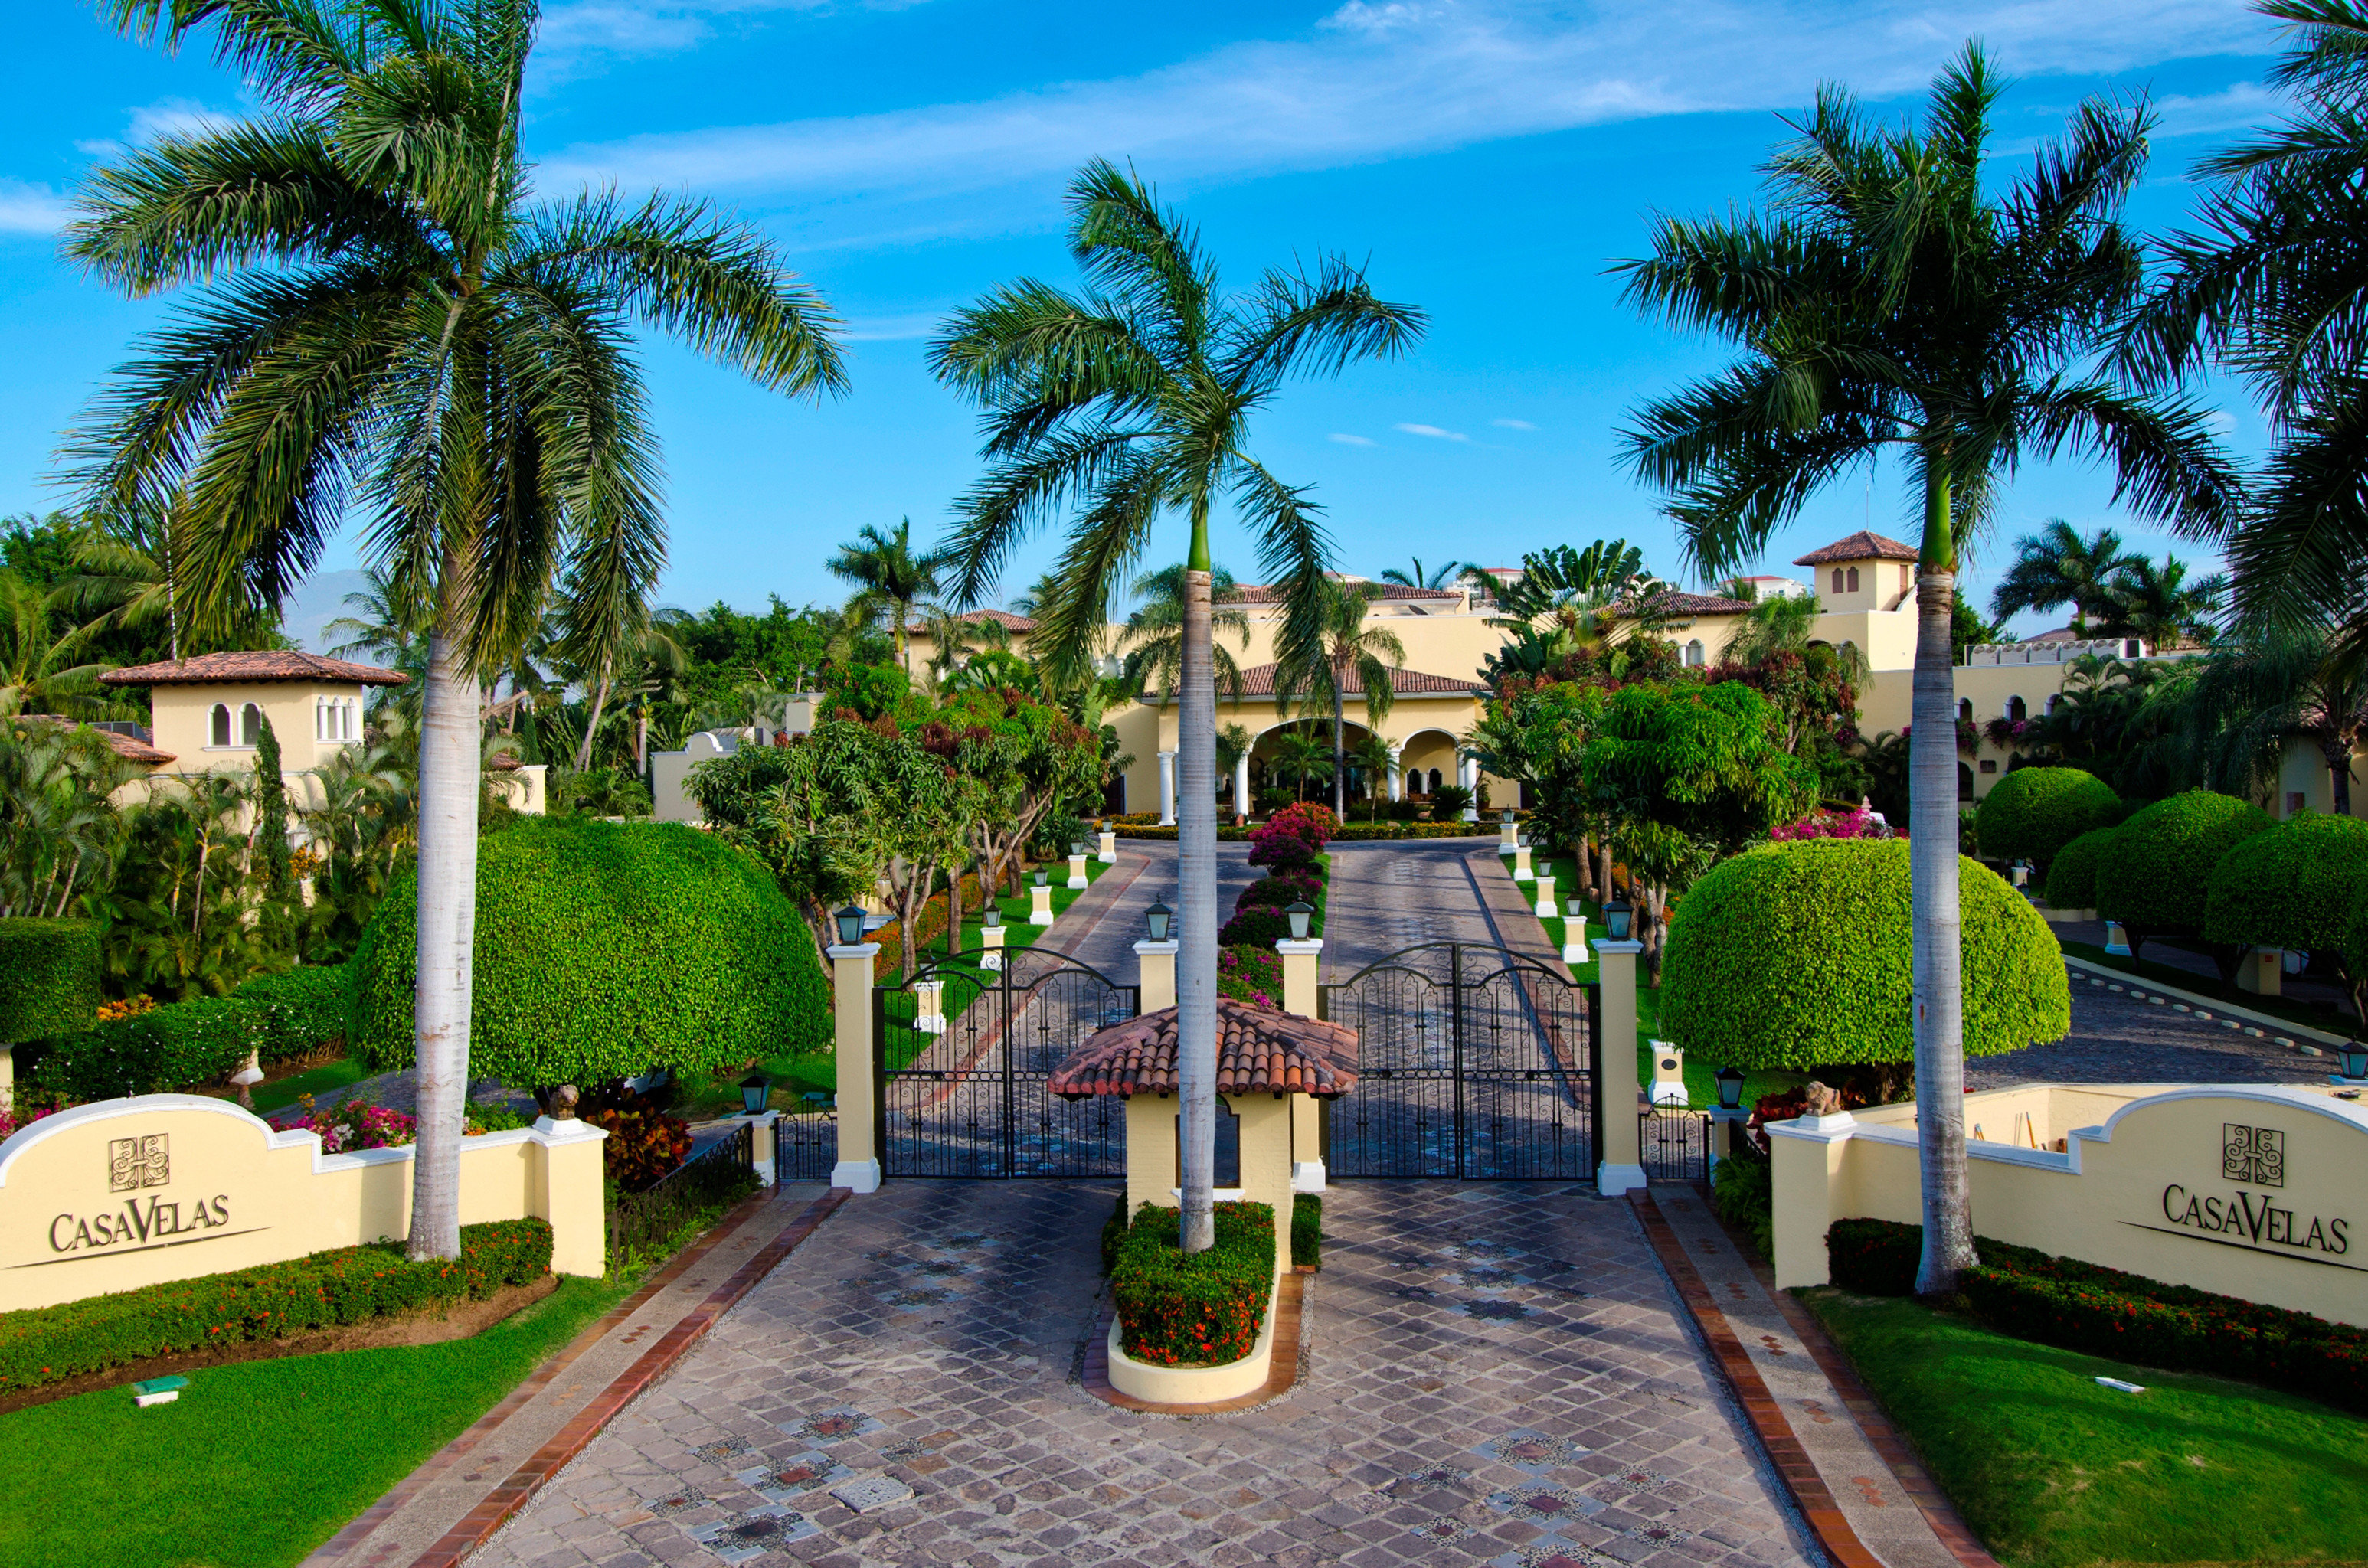 Architecture Boutique Buildings Exterior Tropical tree sky palm Resort walkway swimming pool arecales plant Garden waterway park lined